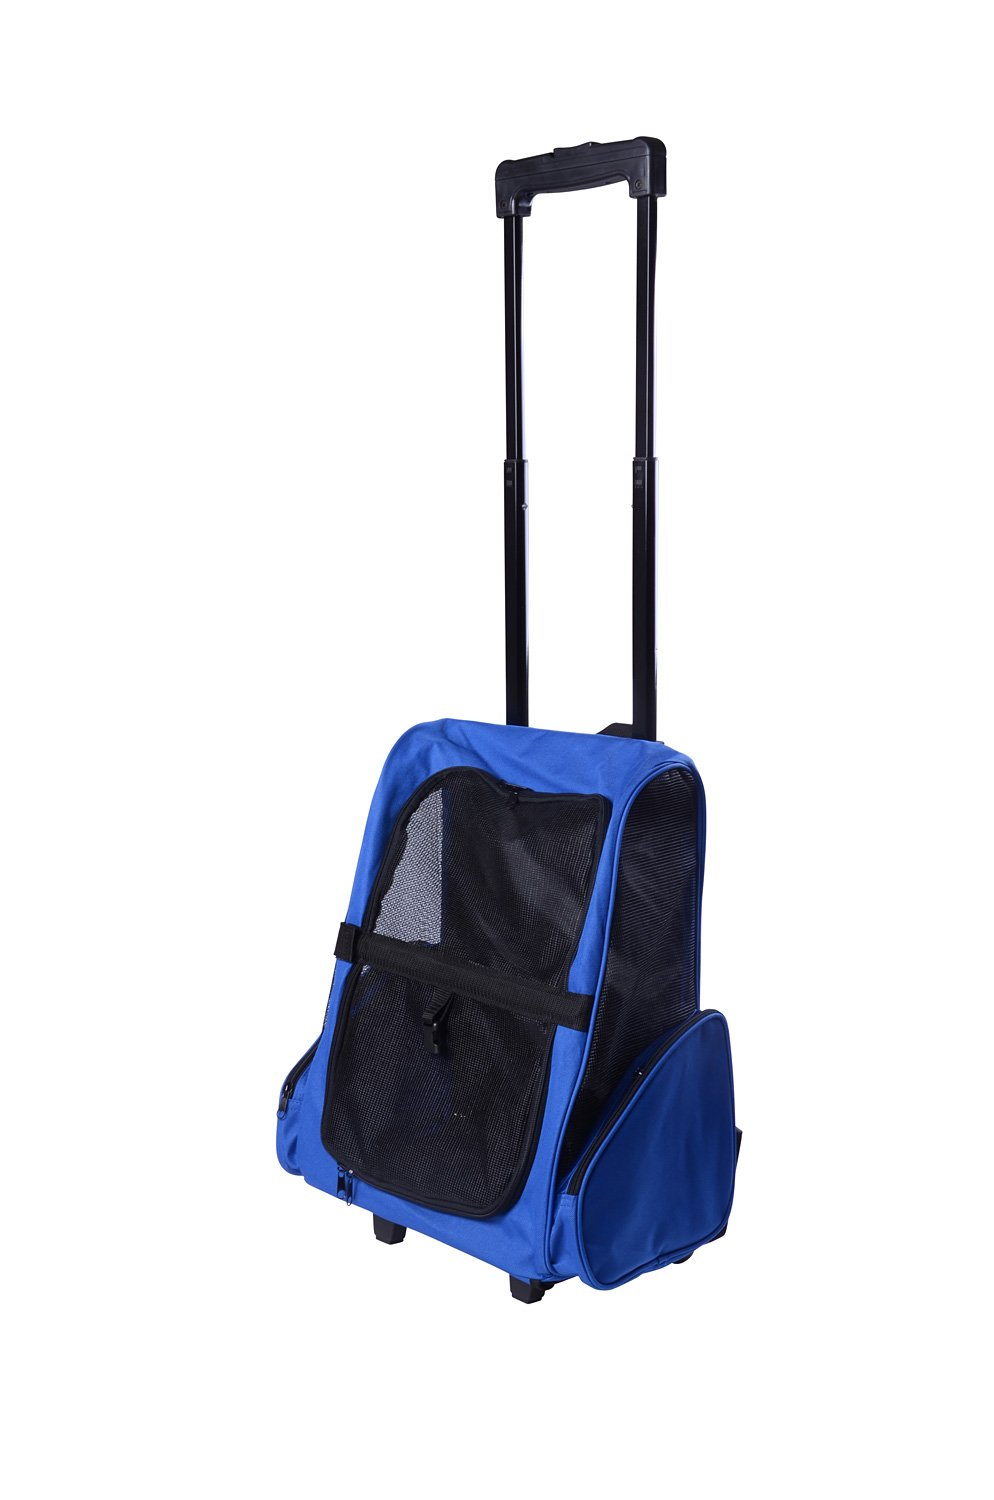 PawHut 4-IN-1 Pet Luggage Box Carrier Cat Dog Backpack Crate Rolling Wheel w/ Removable Stand Blue D1-0011